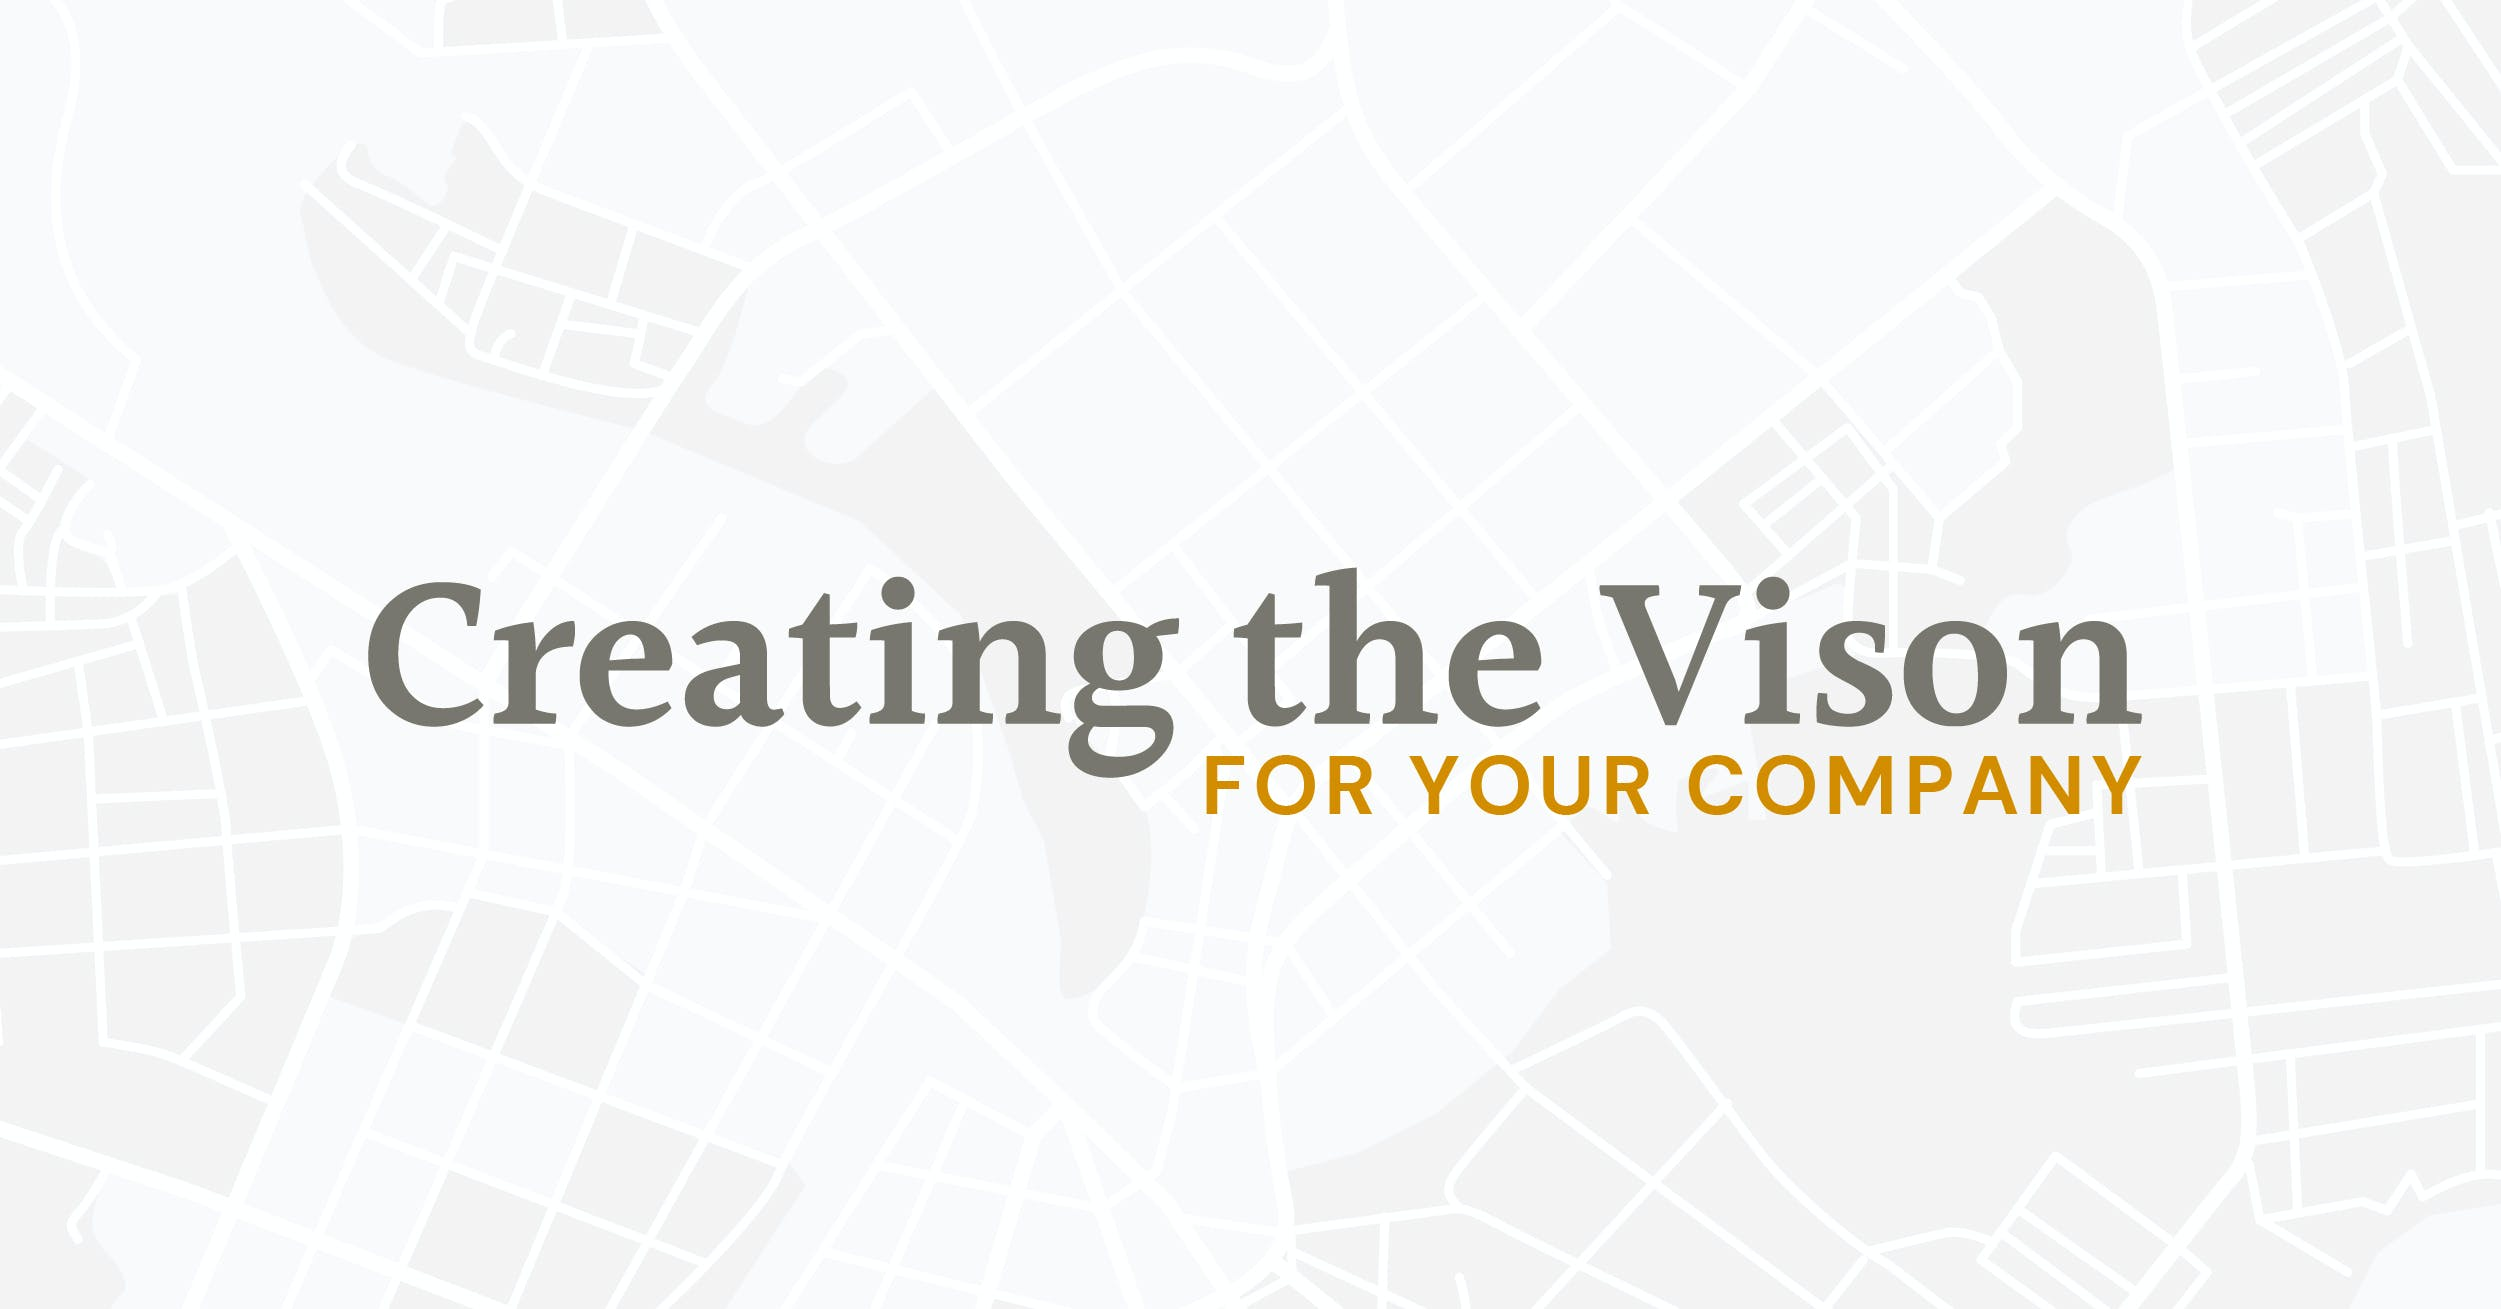 Creating the Vision for Your Company image